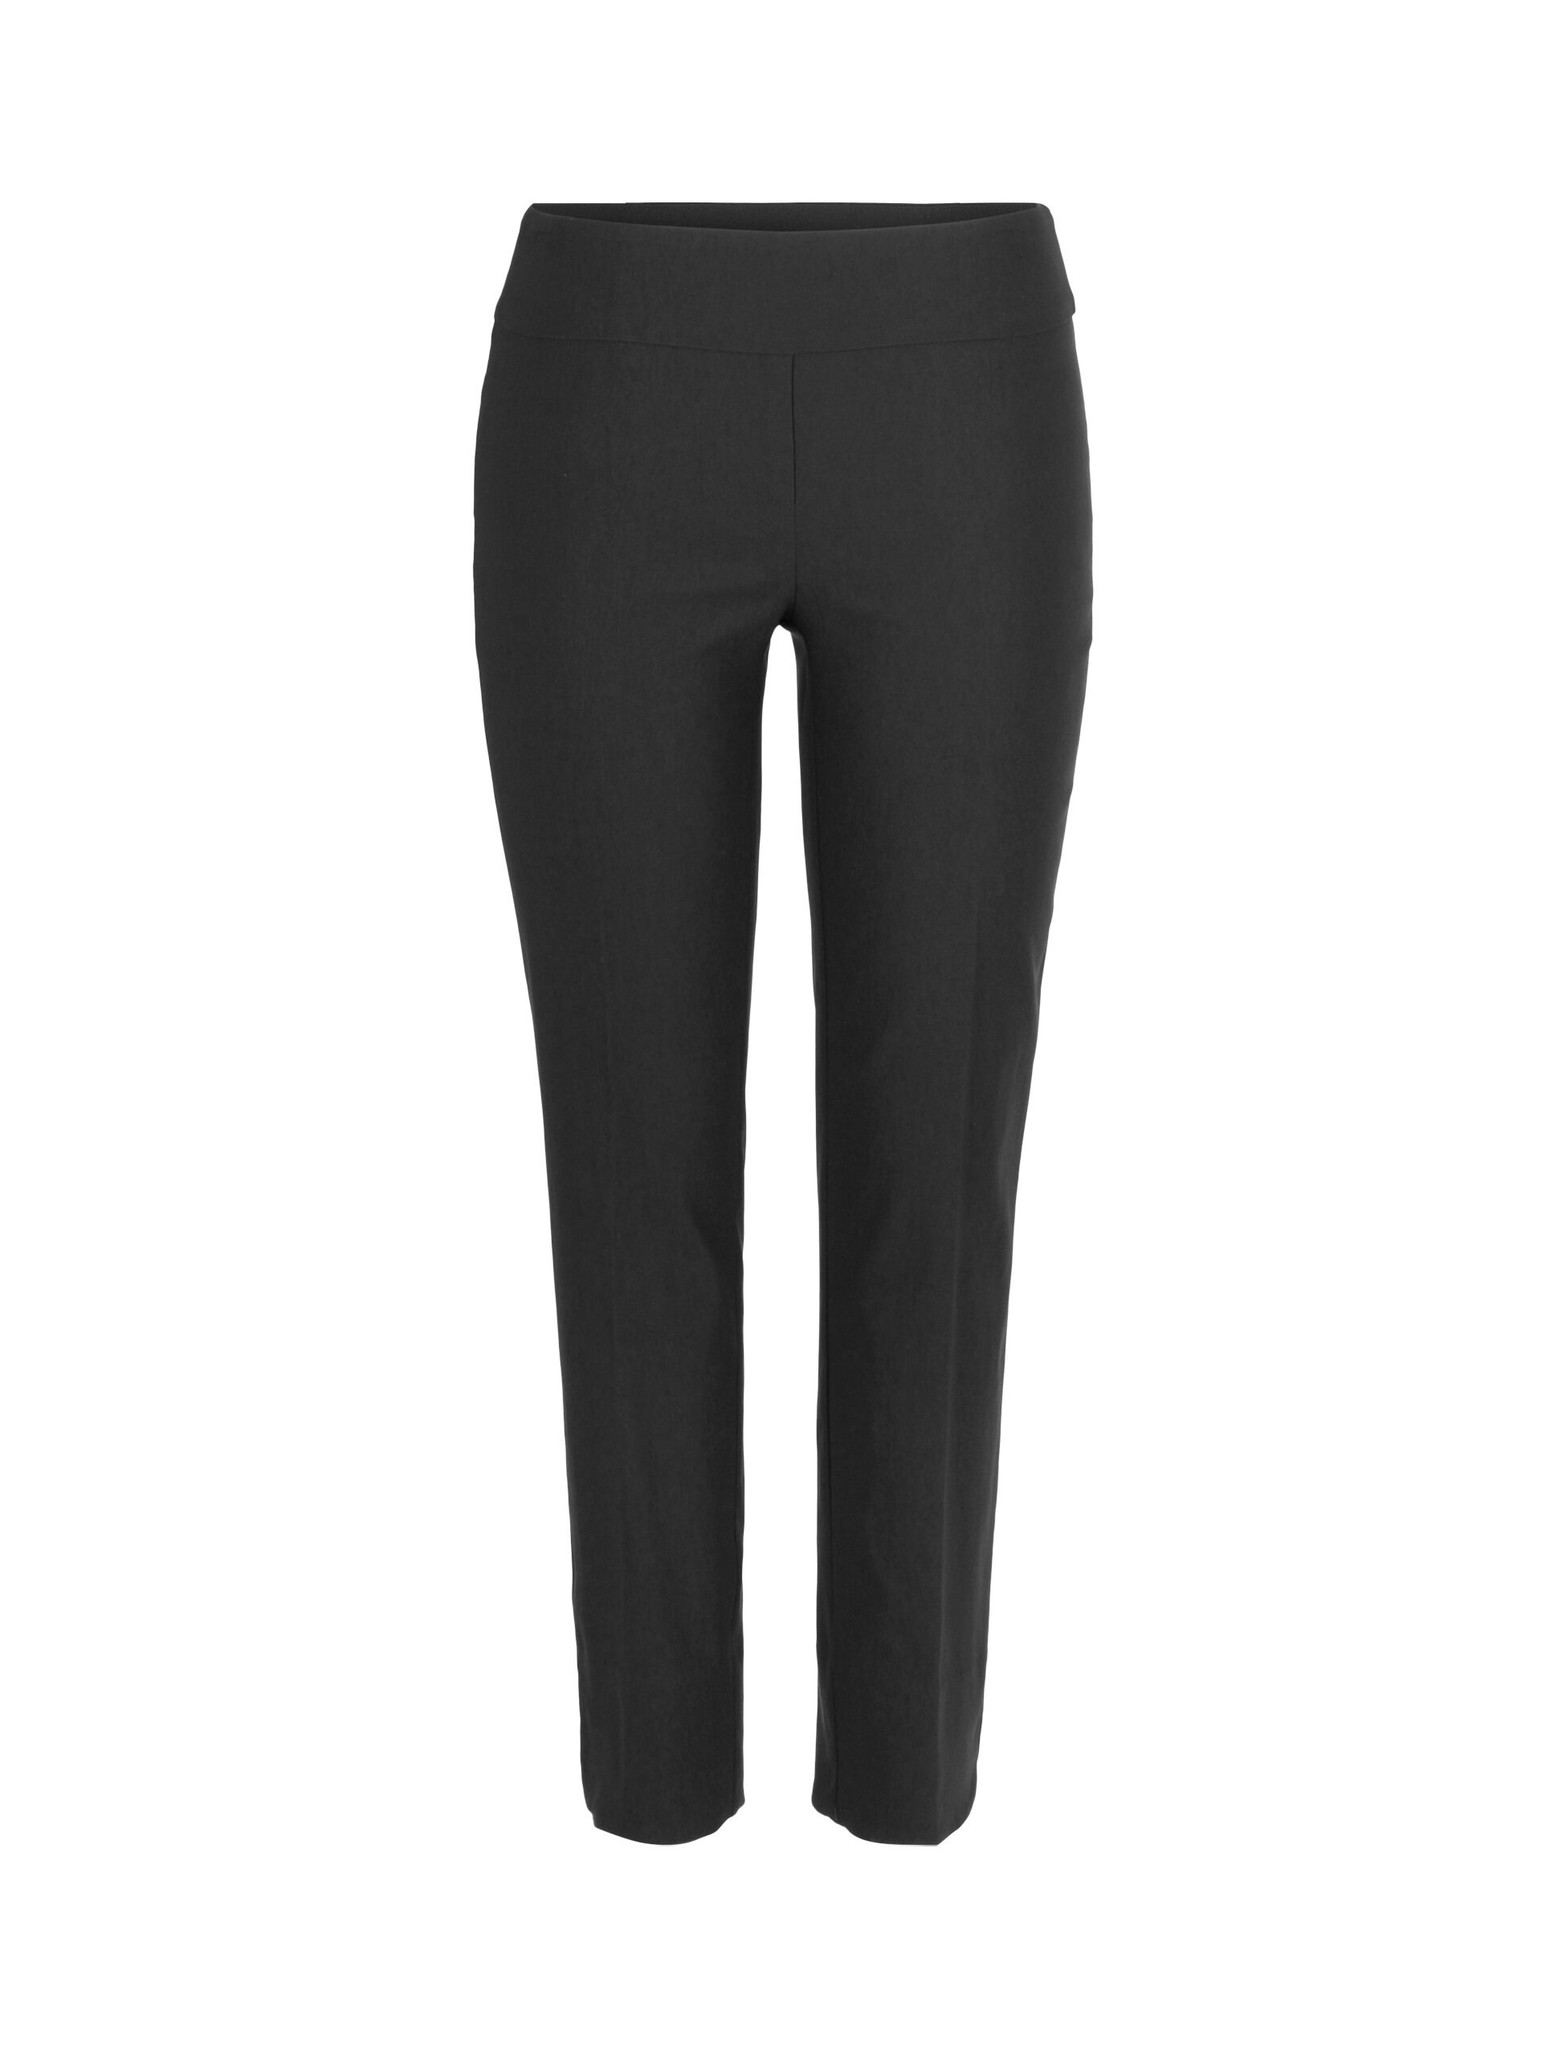 Up Ankle Pant Petal Slit Black